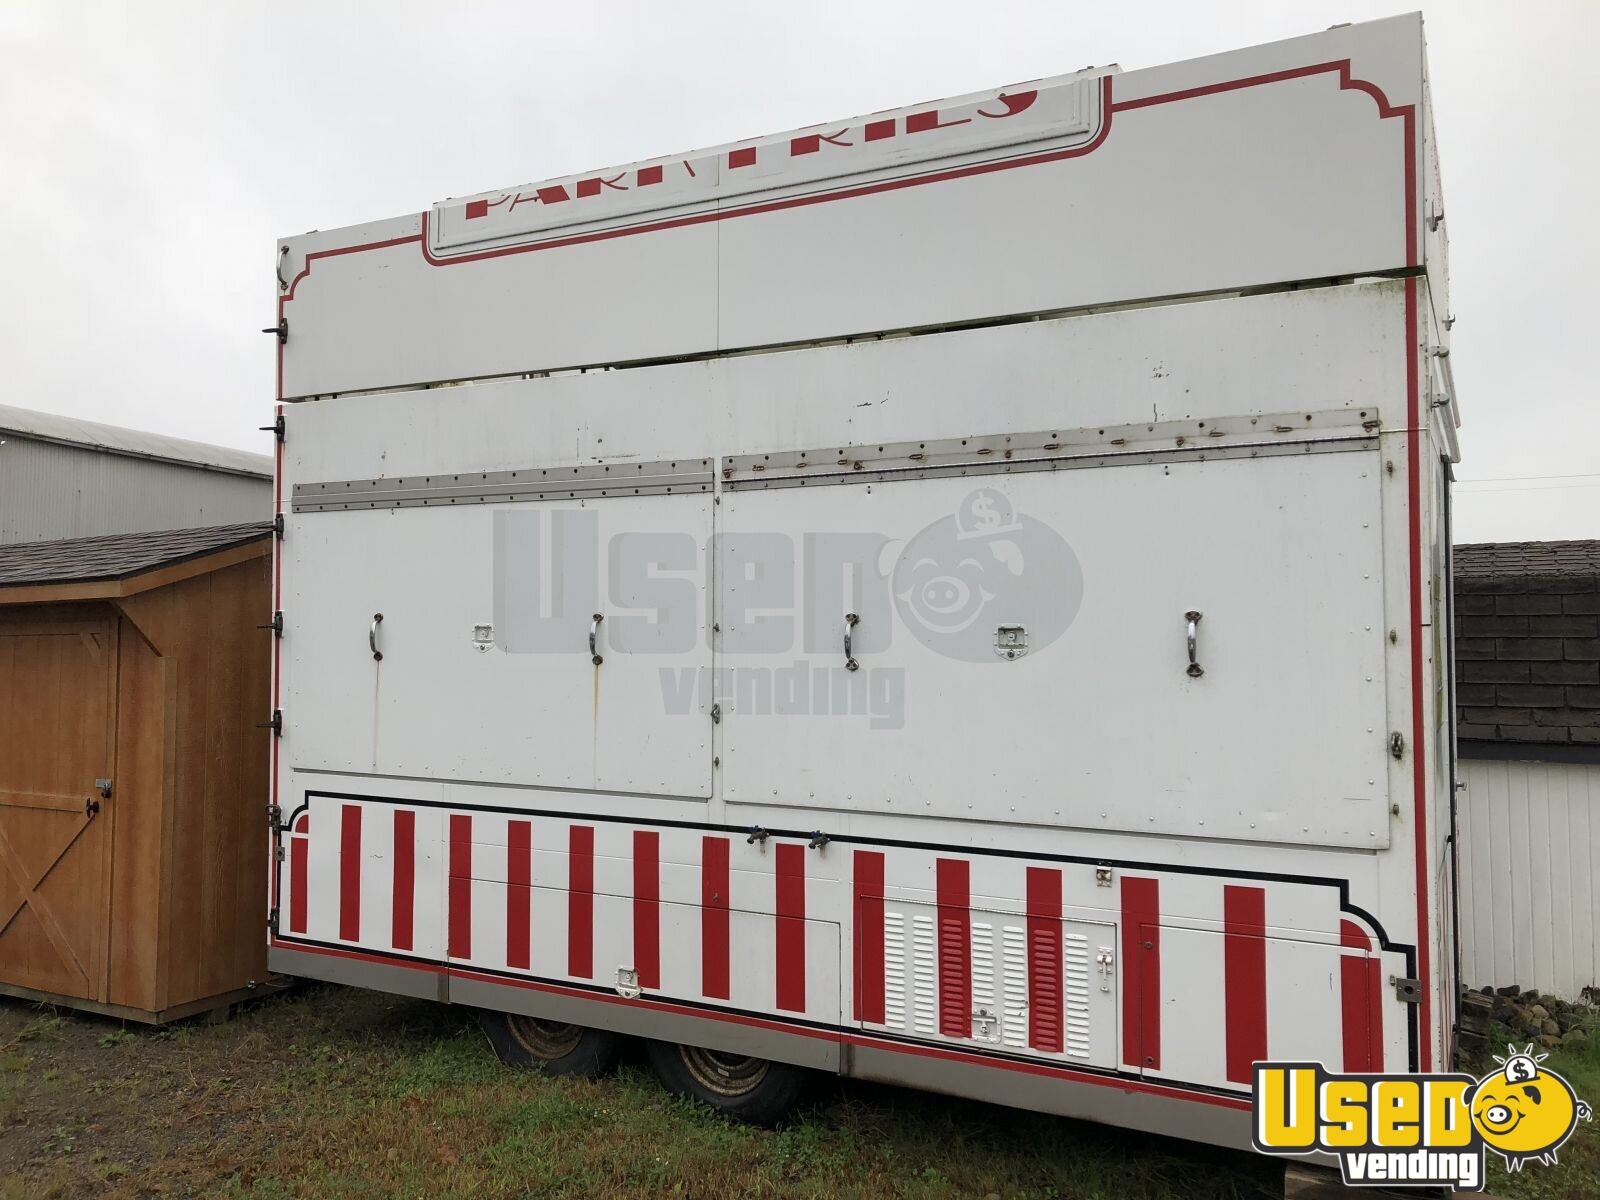 1991 Food Concession Trailer Kitchen Food Trailer Stainless Steel Wall Covers Pennsylvania for Sale - 5